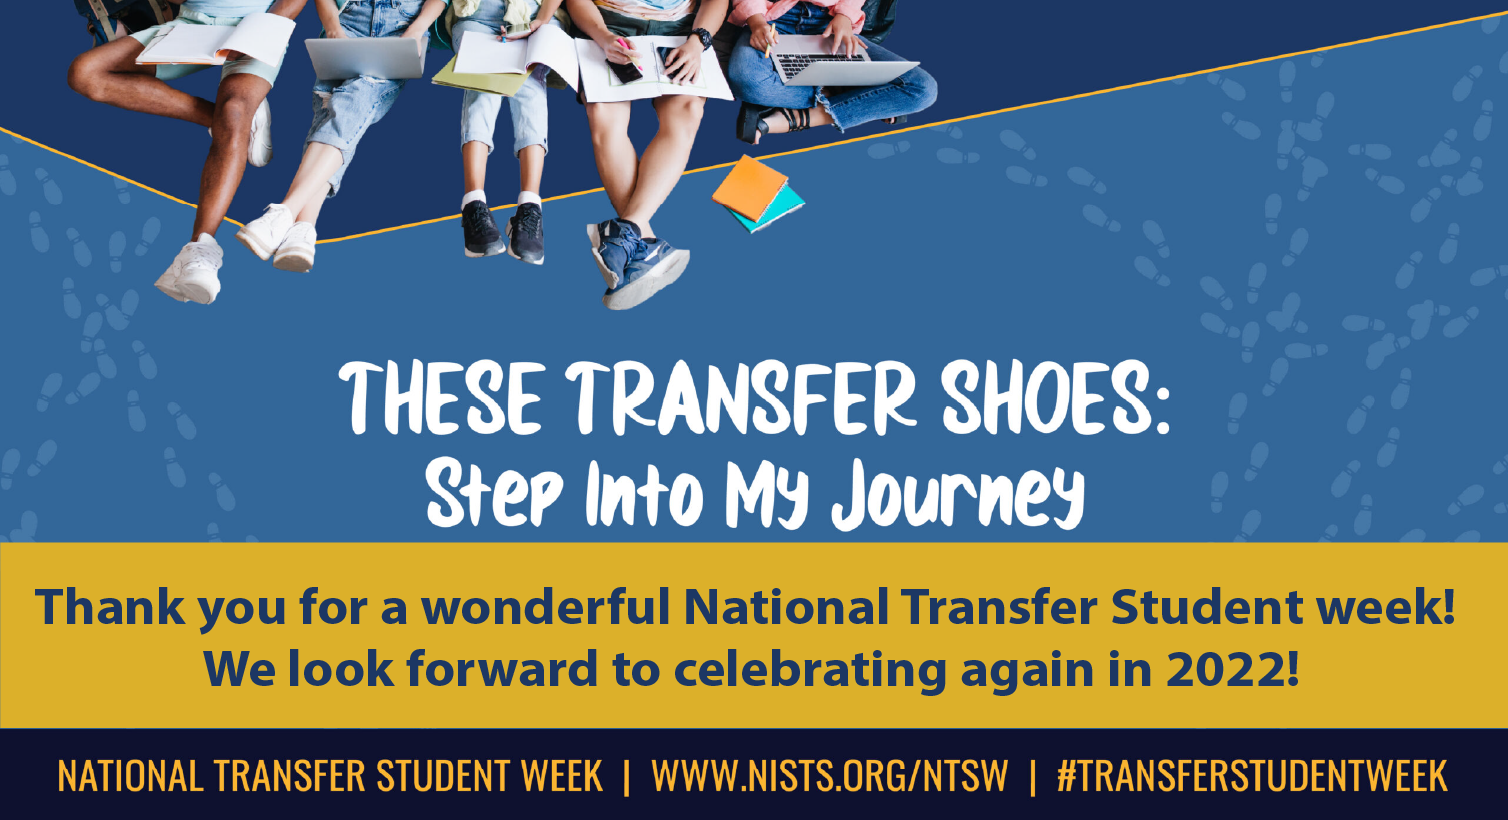 Learn about National Transfer Week events at WSU from October 18-22. This year's theme is 'These transfer Shoes: Step Into My Journey.'